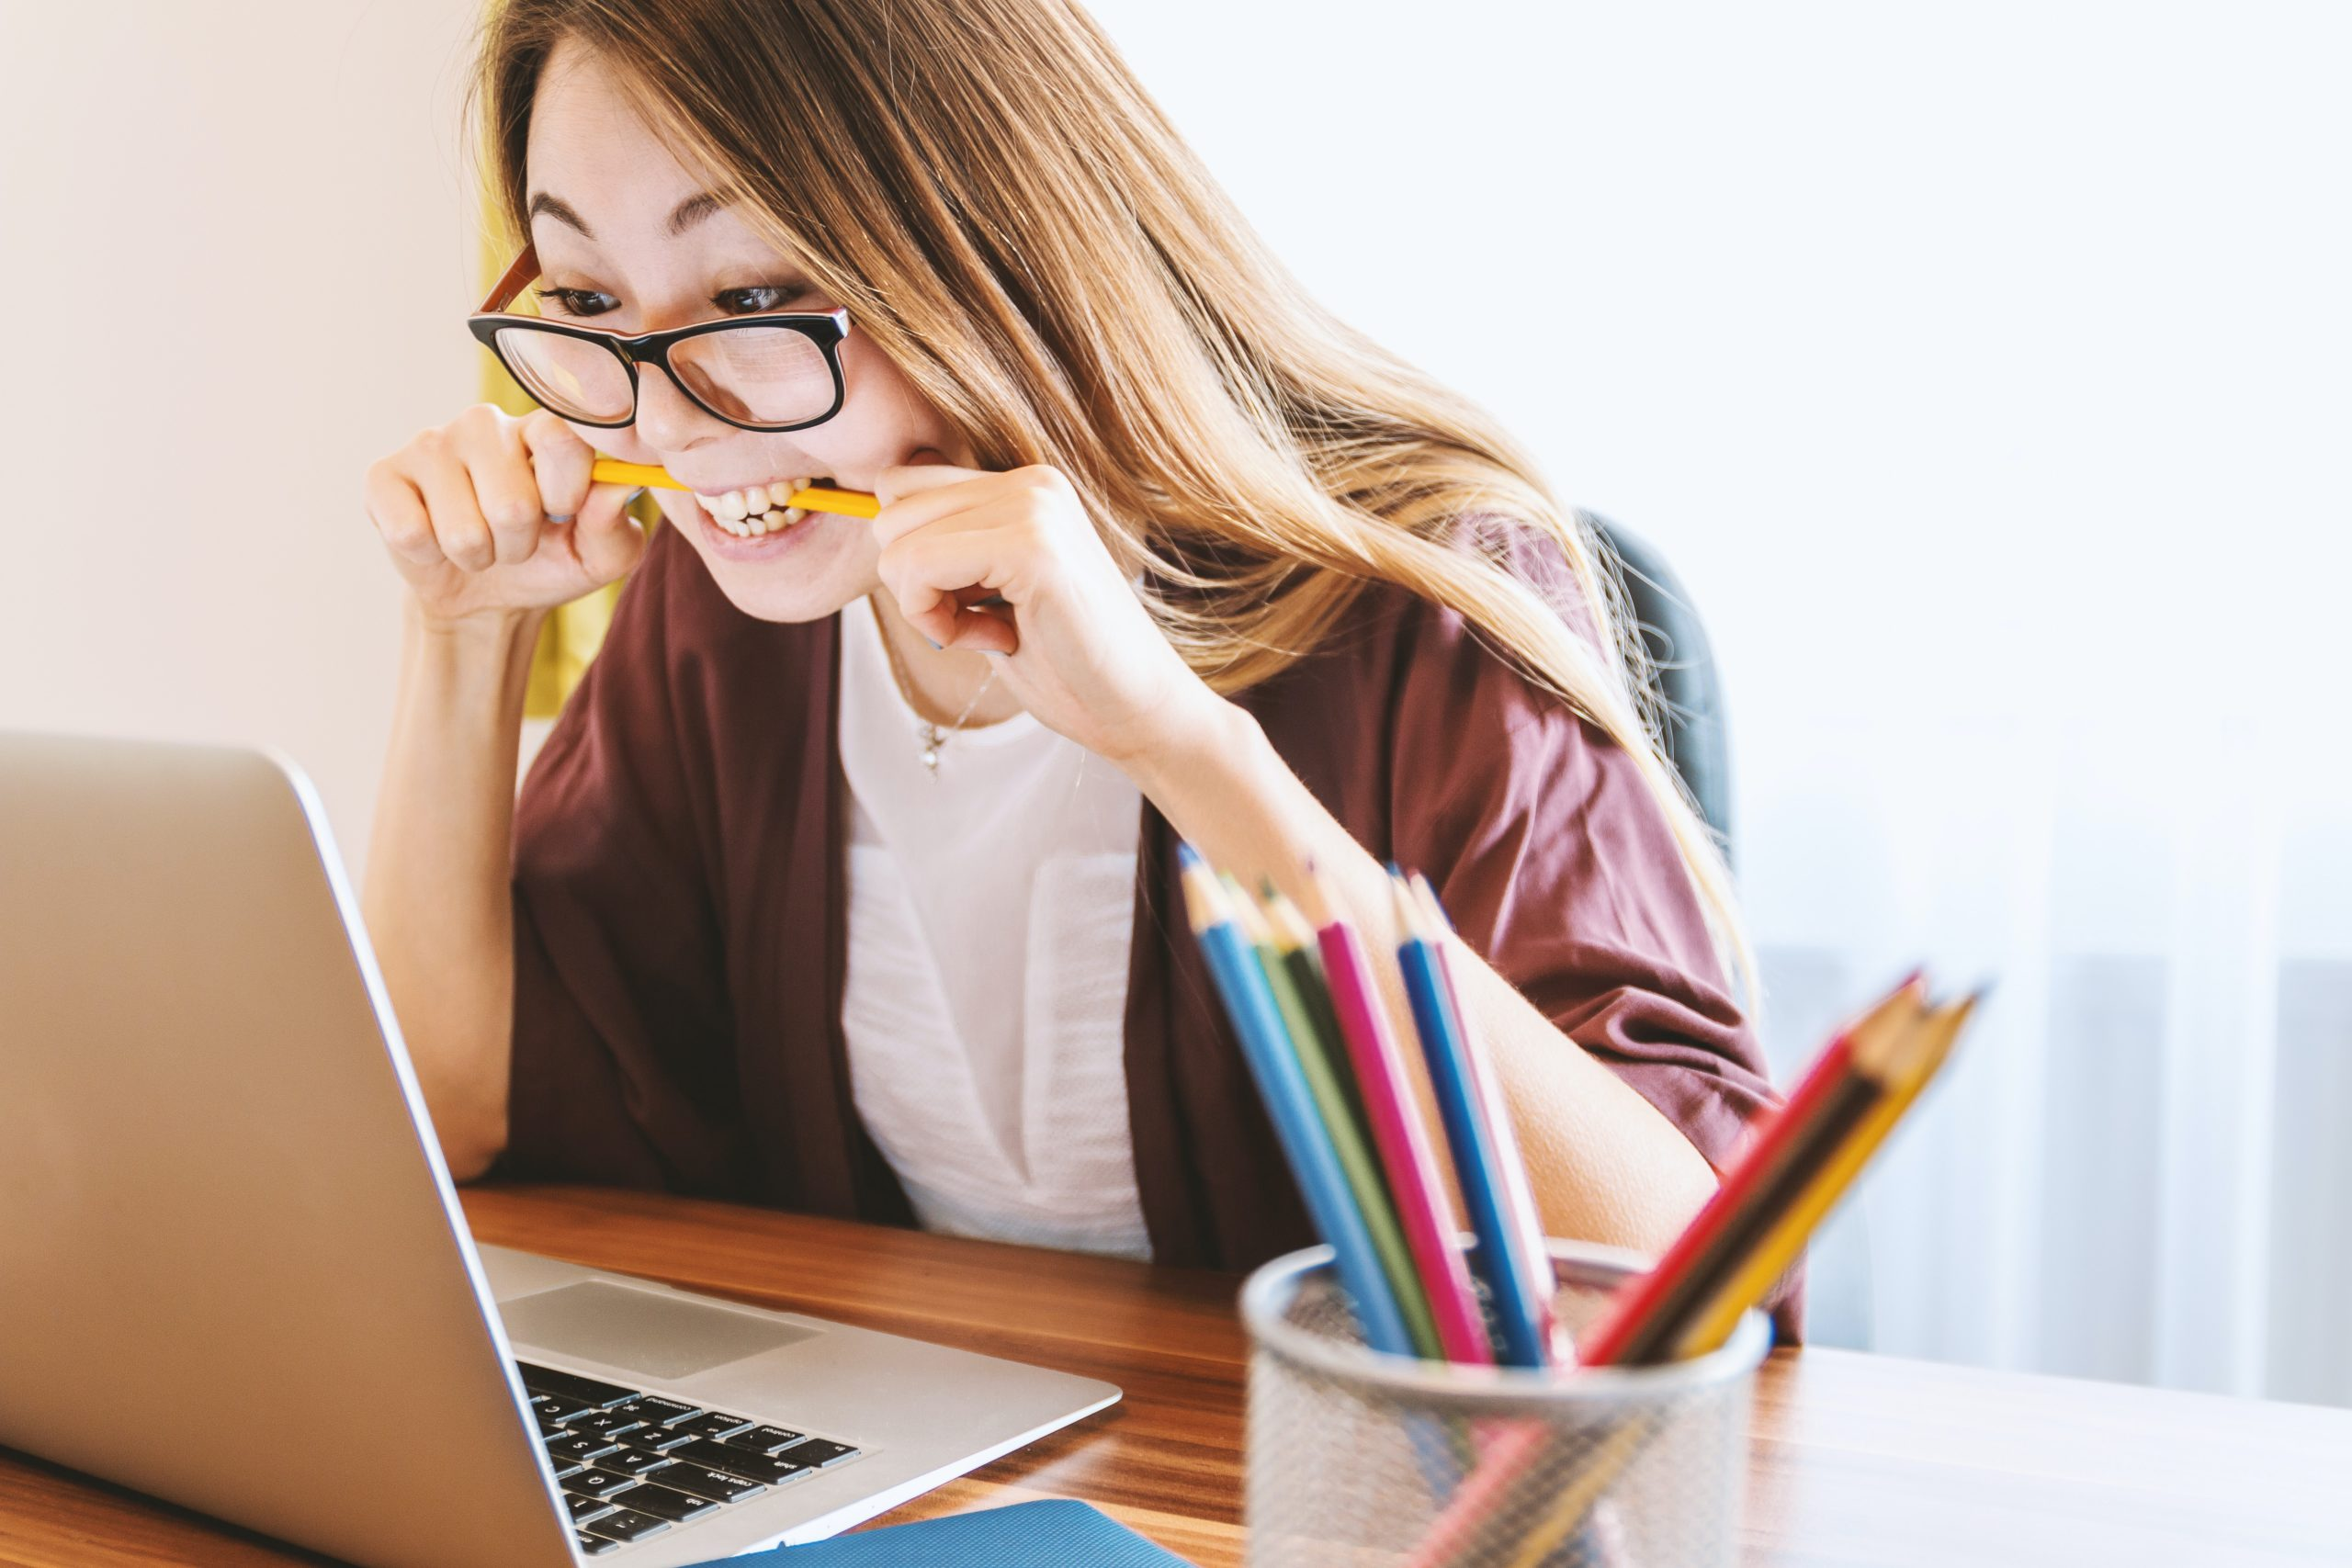 Woman biting a pencil while looking at a laptop